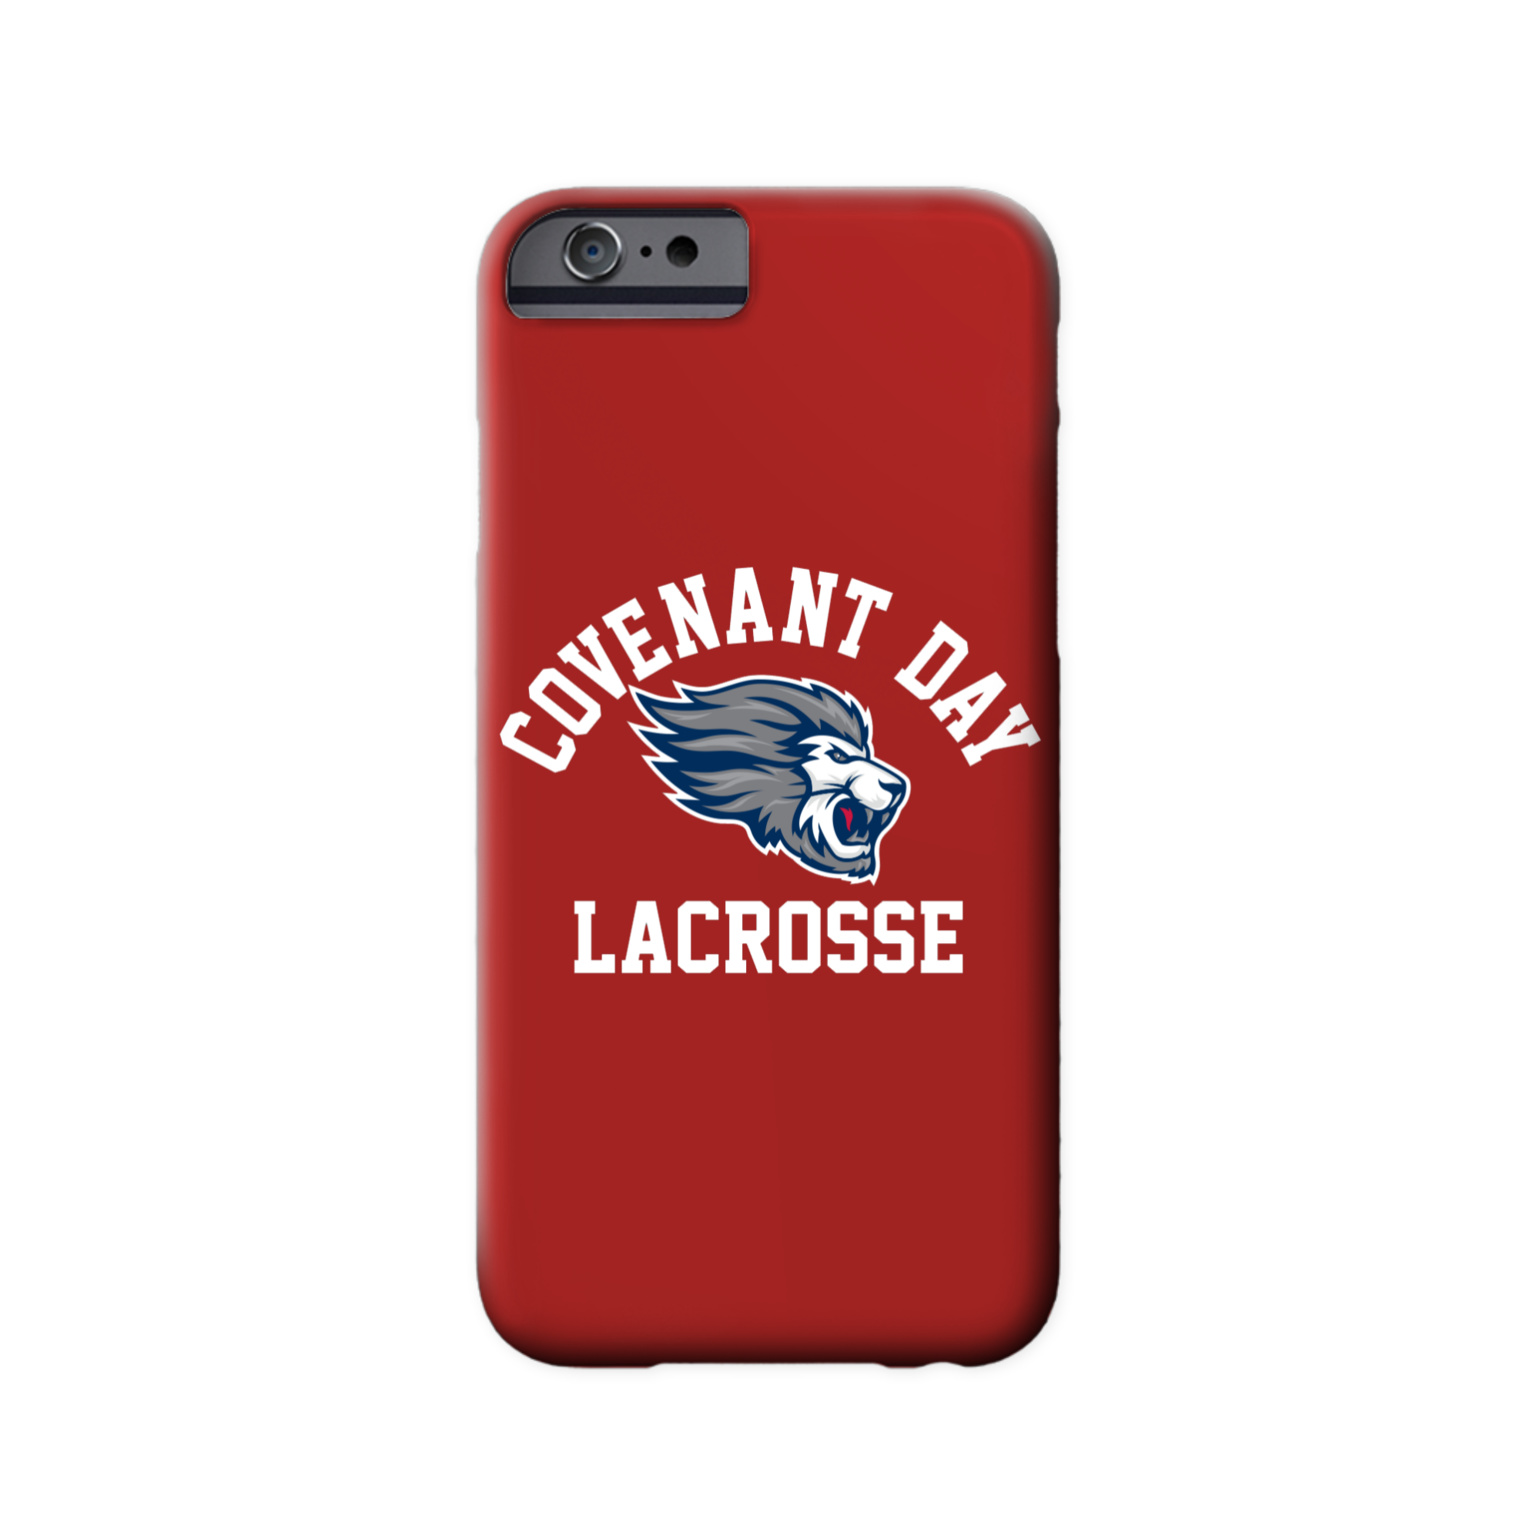 Covenant Day Lacrosse Phone Case